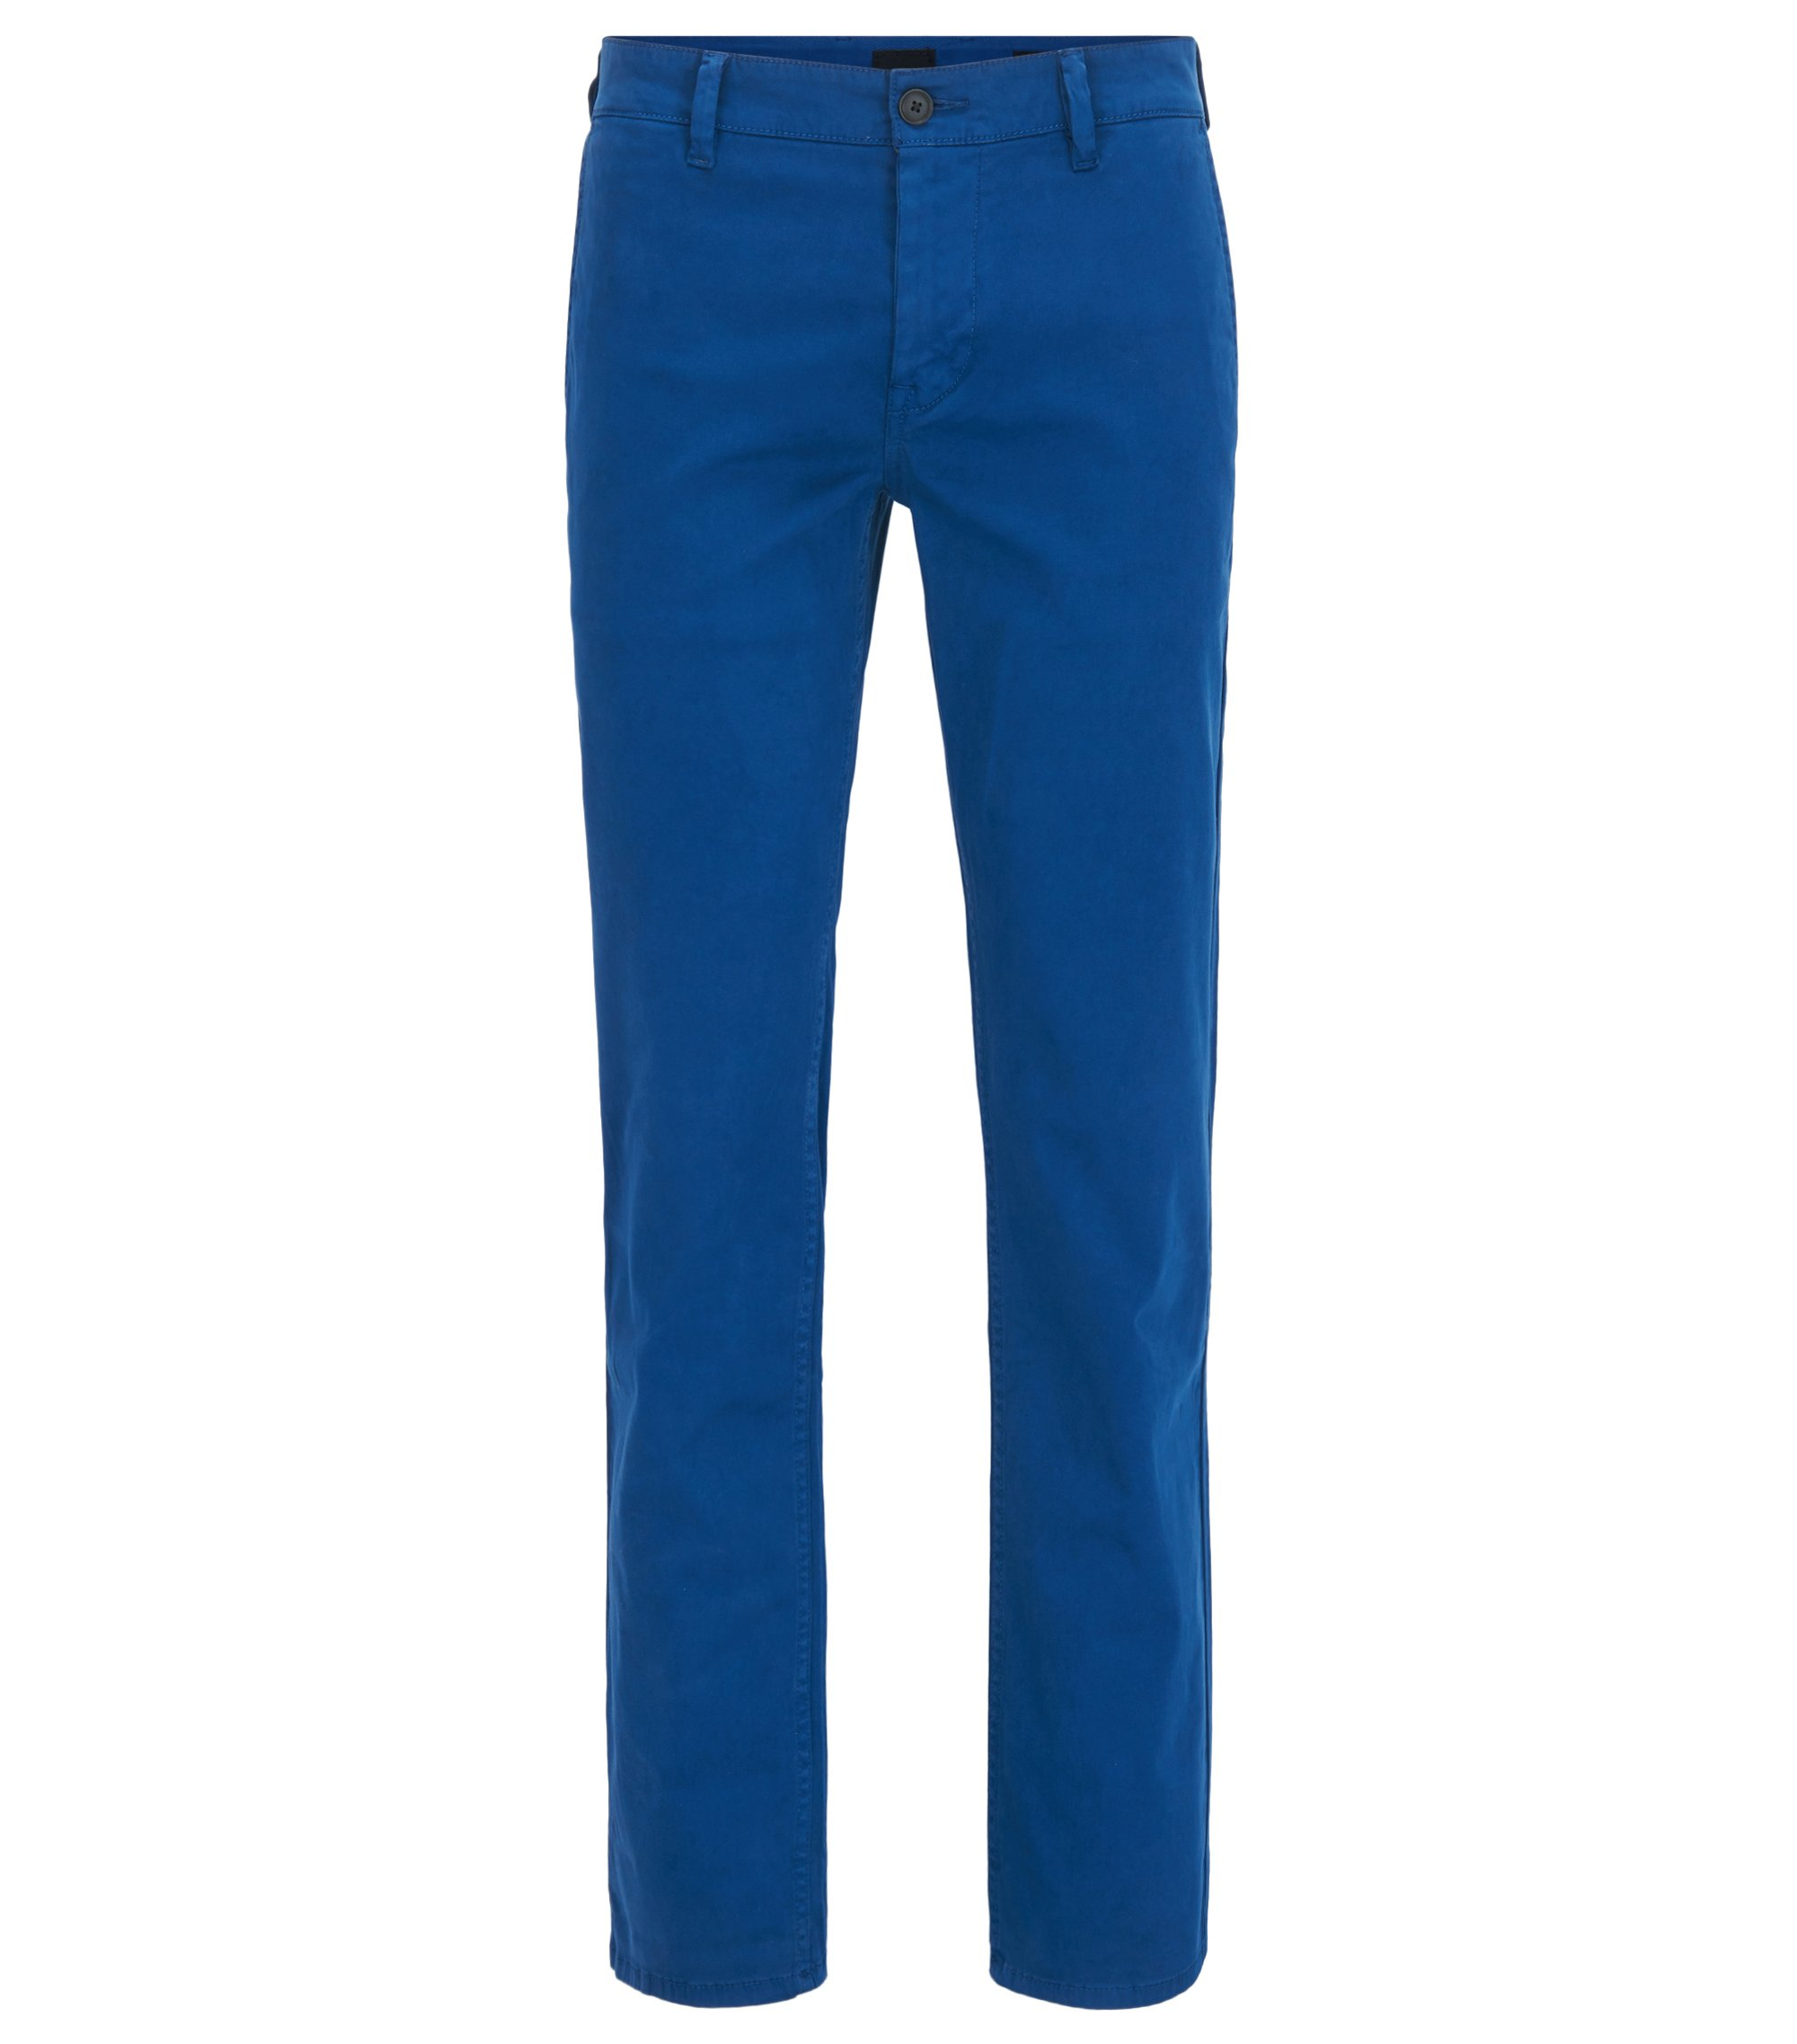 Pantalon Regular Fit en coton stretch gratté, Bleu